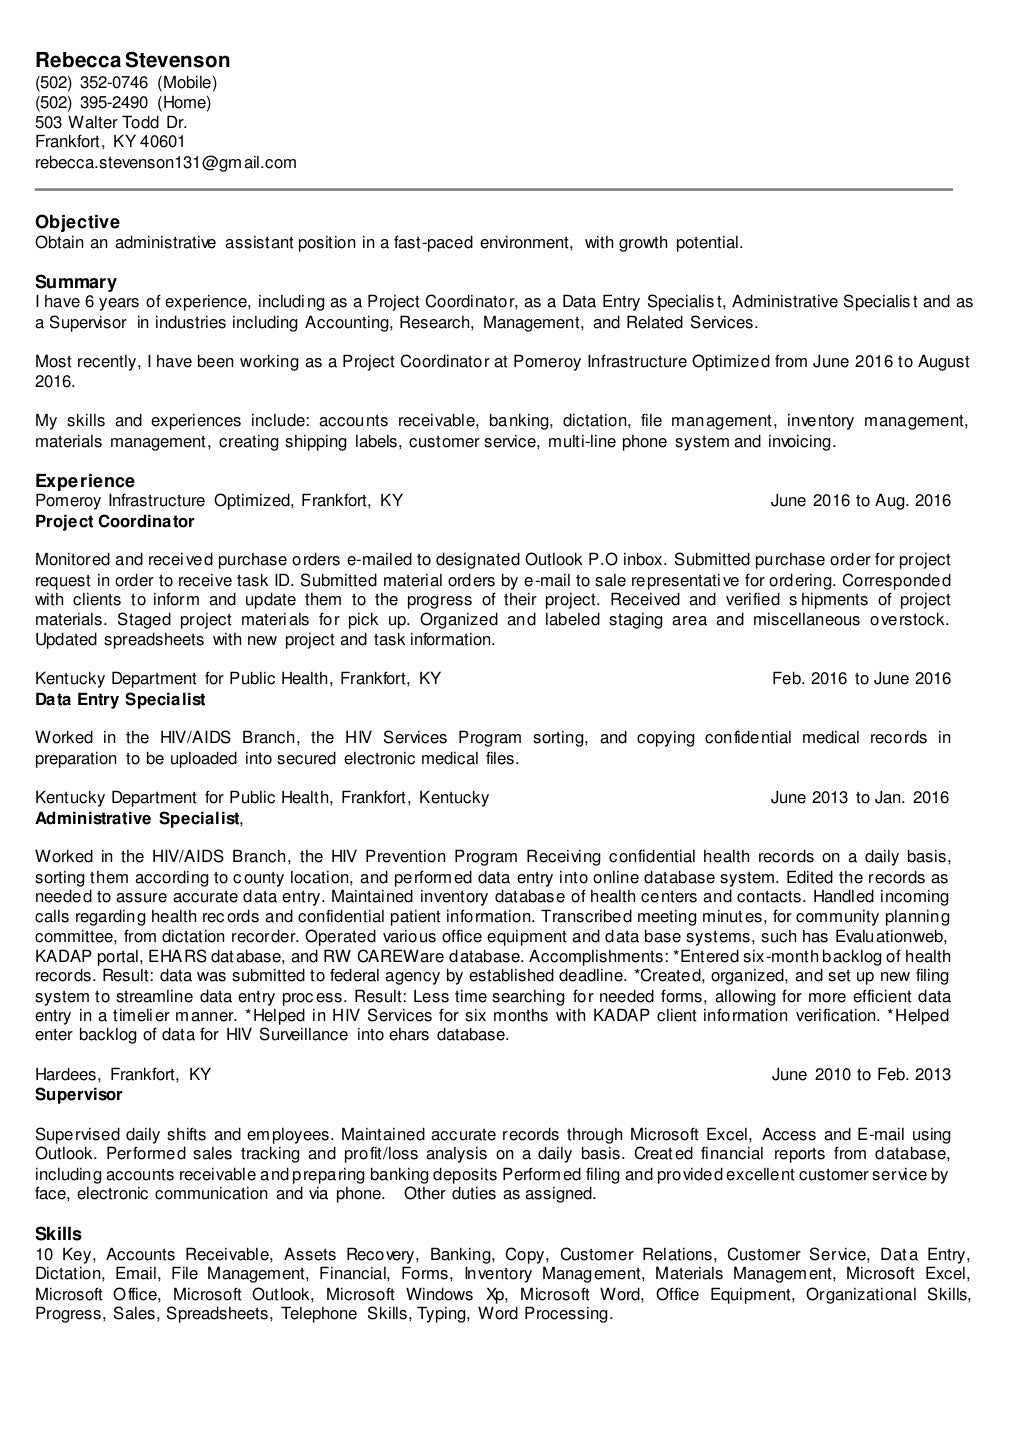 new 2016 resume 2a